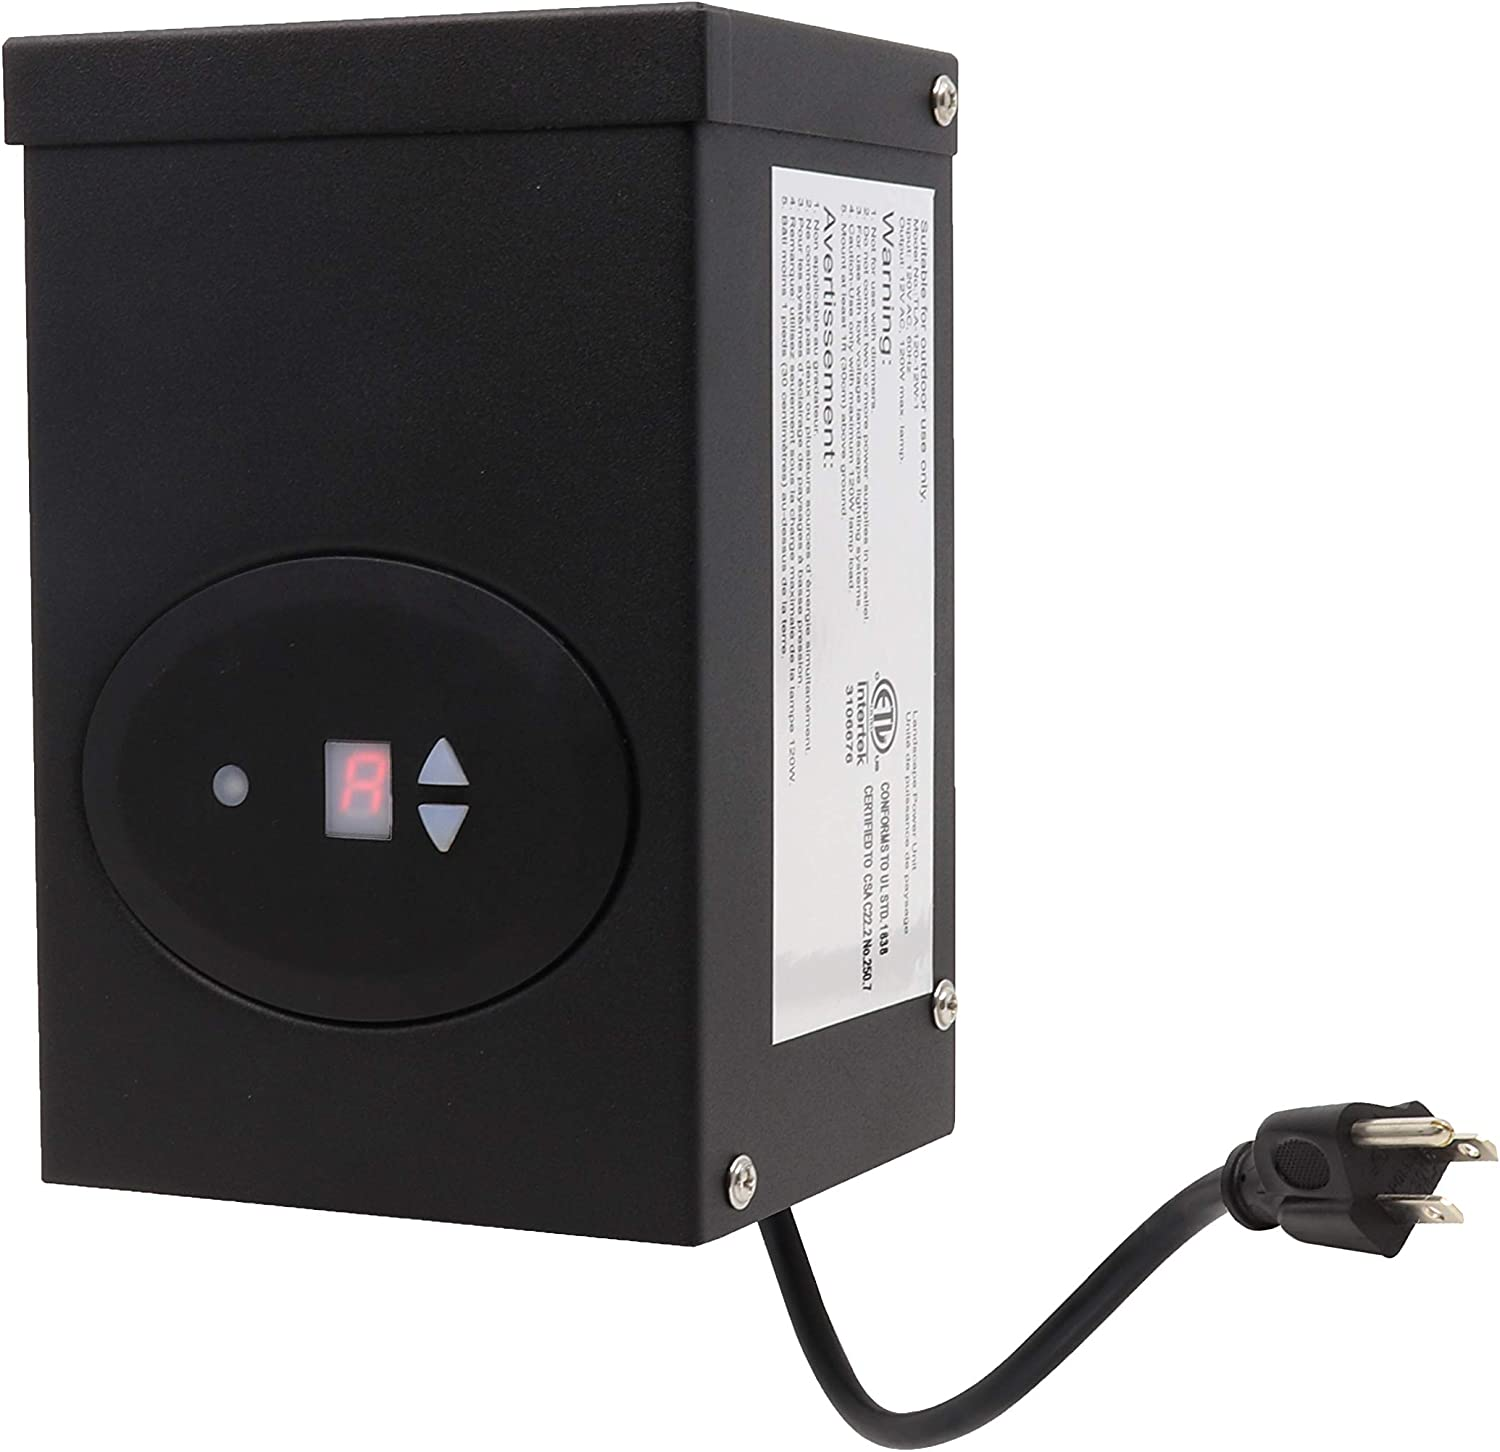 GKOLED ETL Listed 120W Low Voltage Transformer with Photocell and Timer, 120V AC to 12V AC Outdoor Power Pack, for Landscape Lighting Systems, Fully Encapsulated Toroid Core, CEC VI Certified